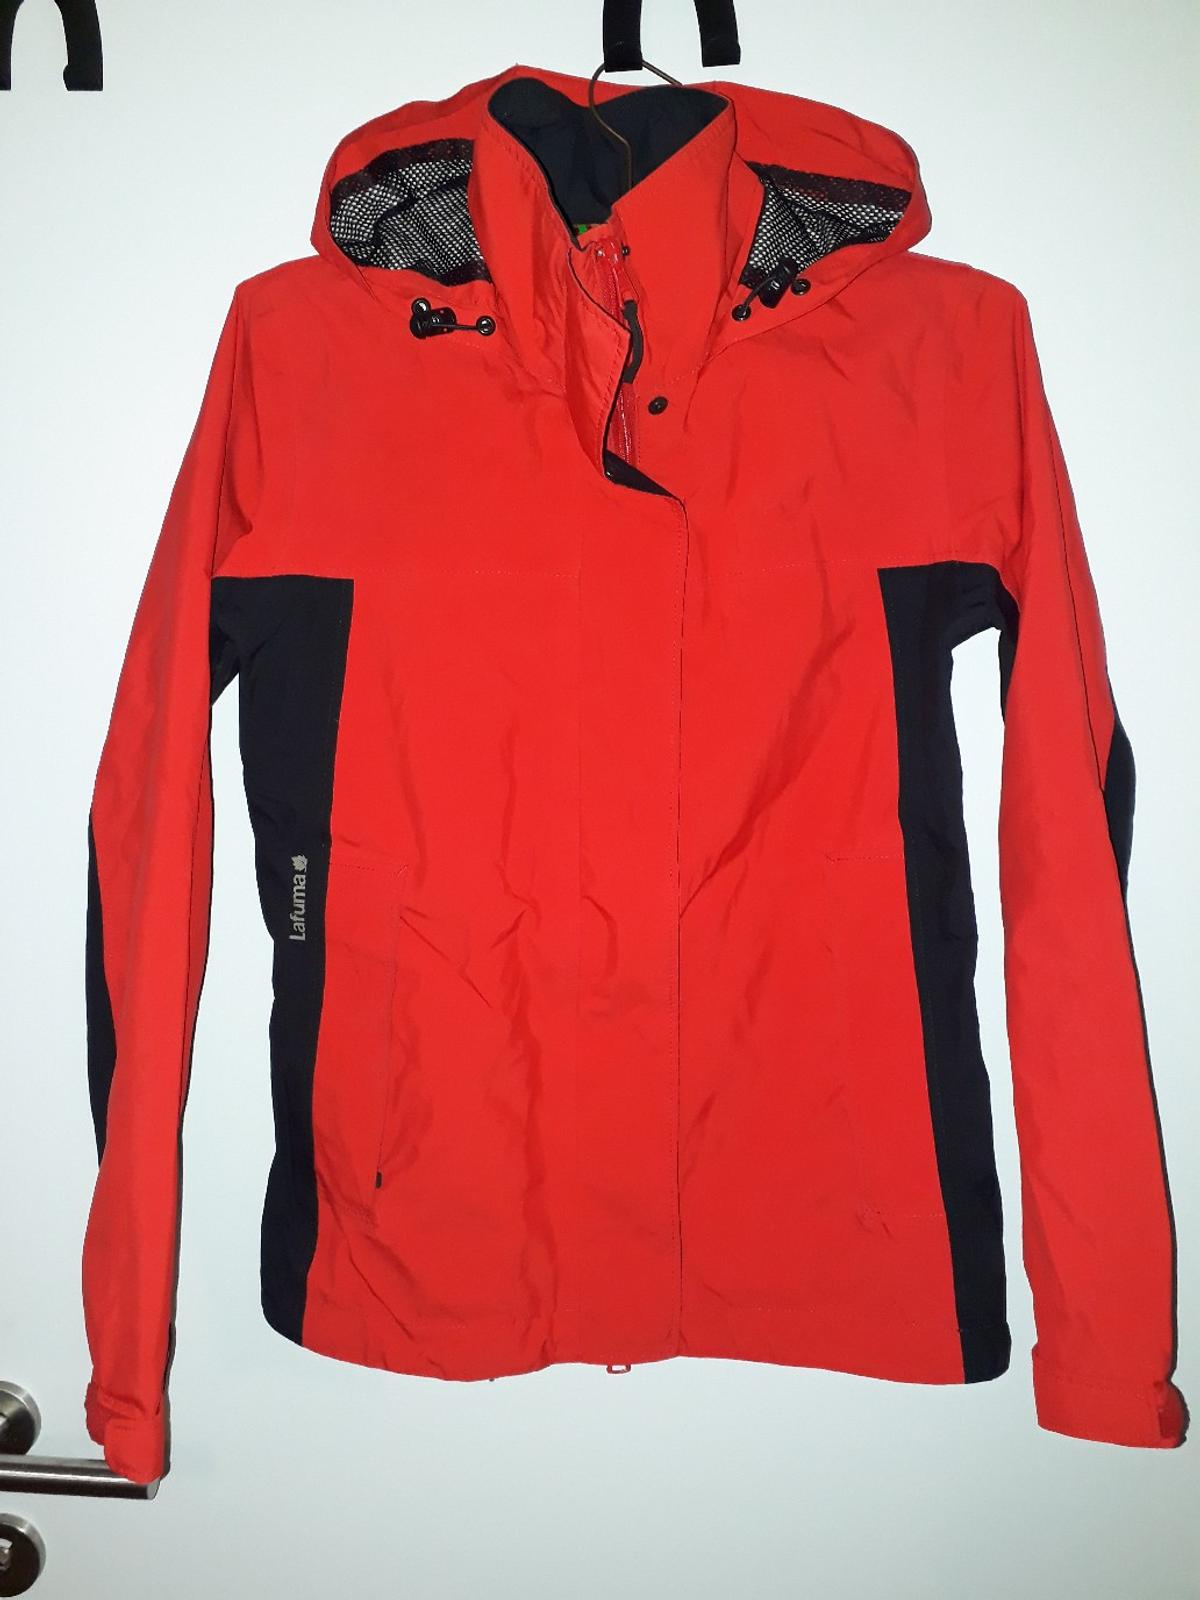 best service 3a01d 97f8e LAFUMA GORETEX jacke in 6764 Lech for €45.00 for sale - Shpock